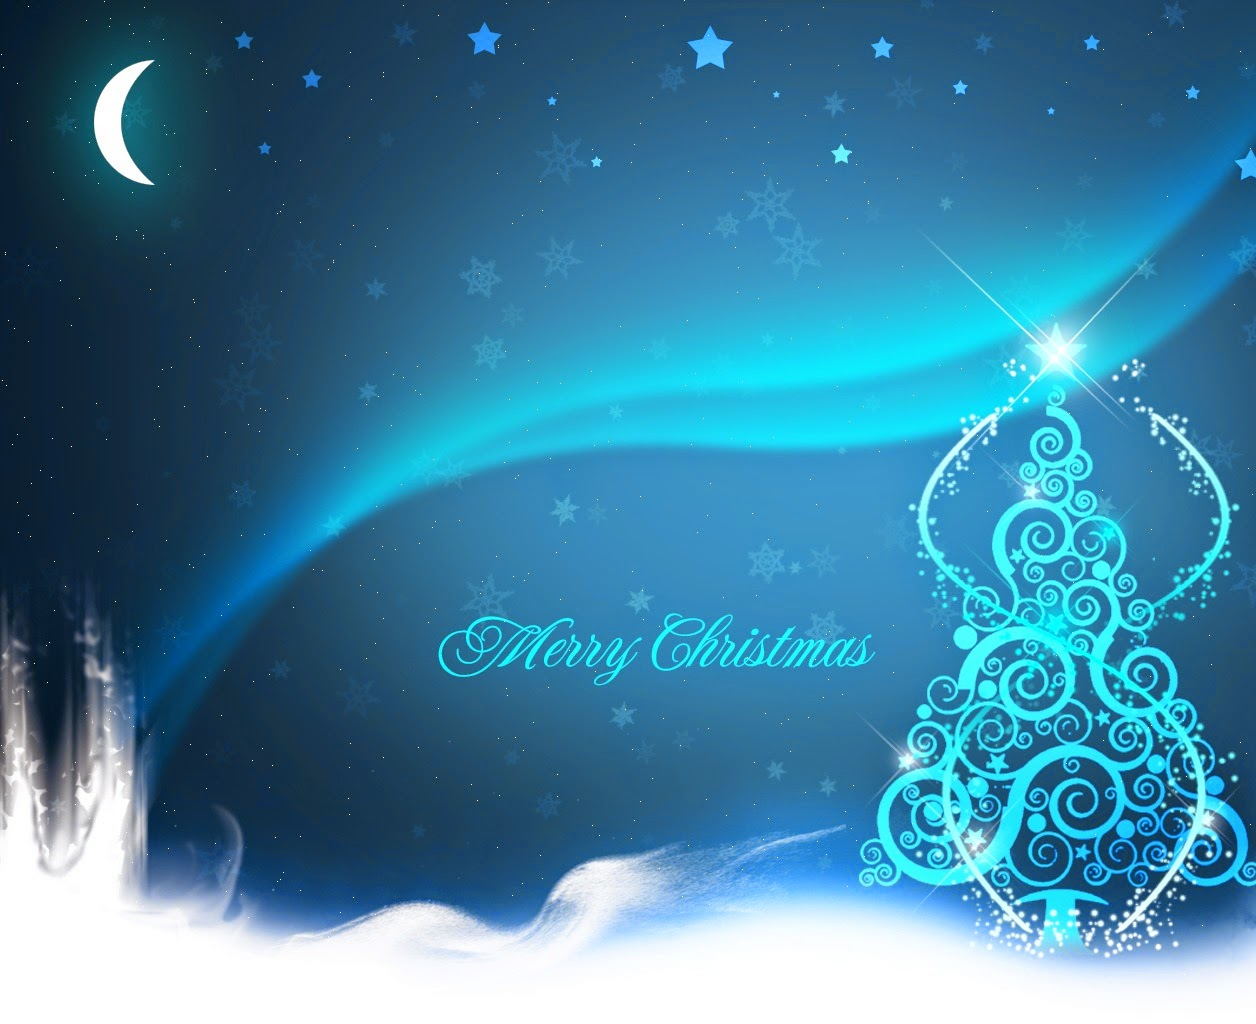 2014 free christmas greeting cards merry christmas wallpaper e cards - Christmas E Cards